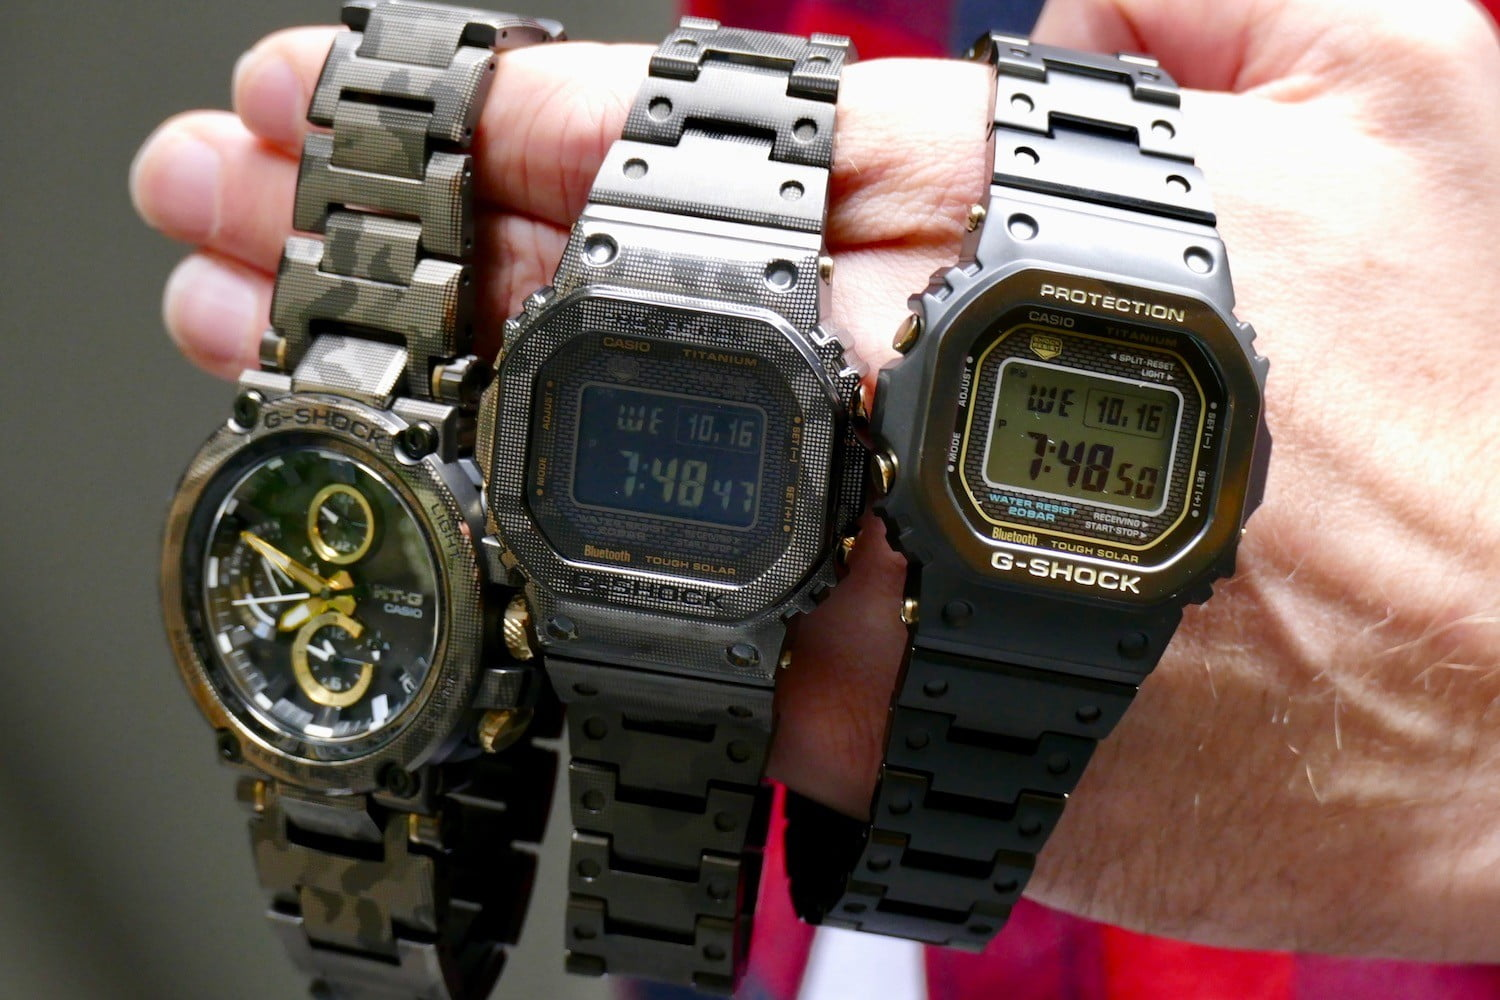 G-Shock casts new Bluetooth watches in strong, yet lightweight titanium